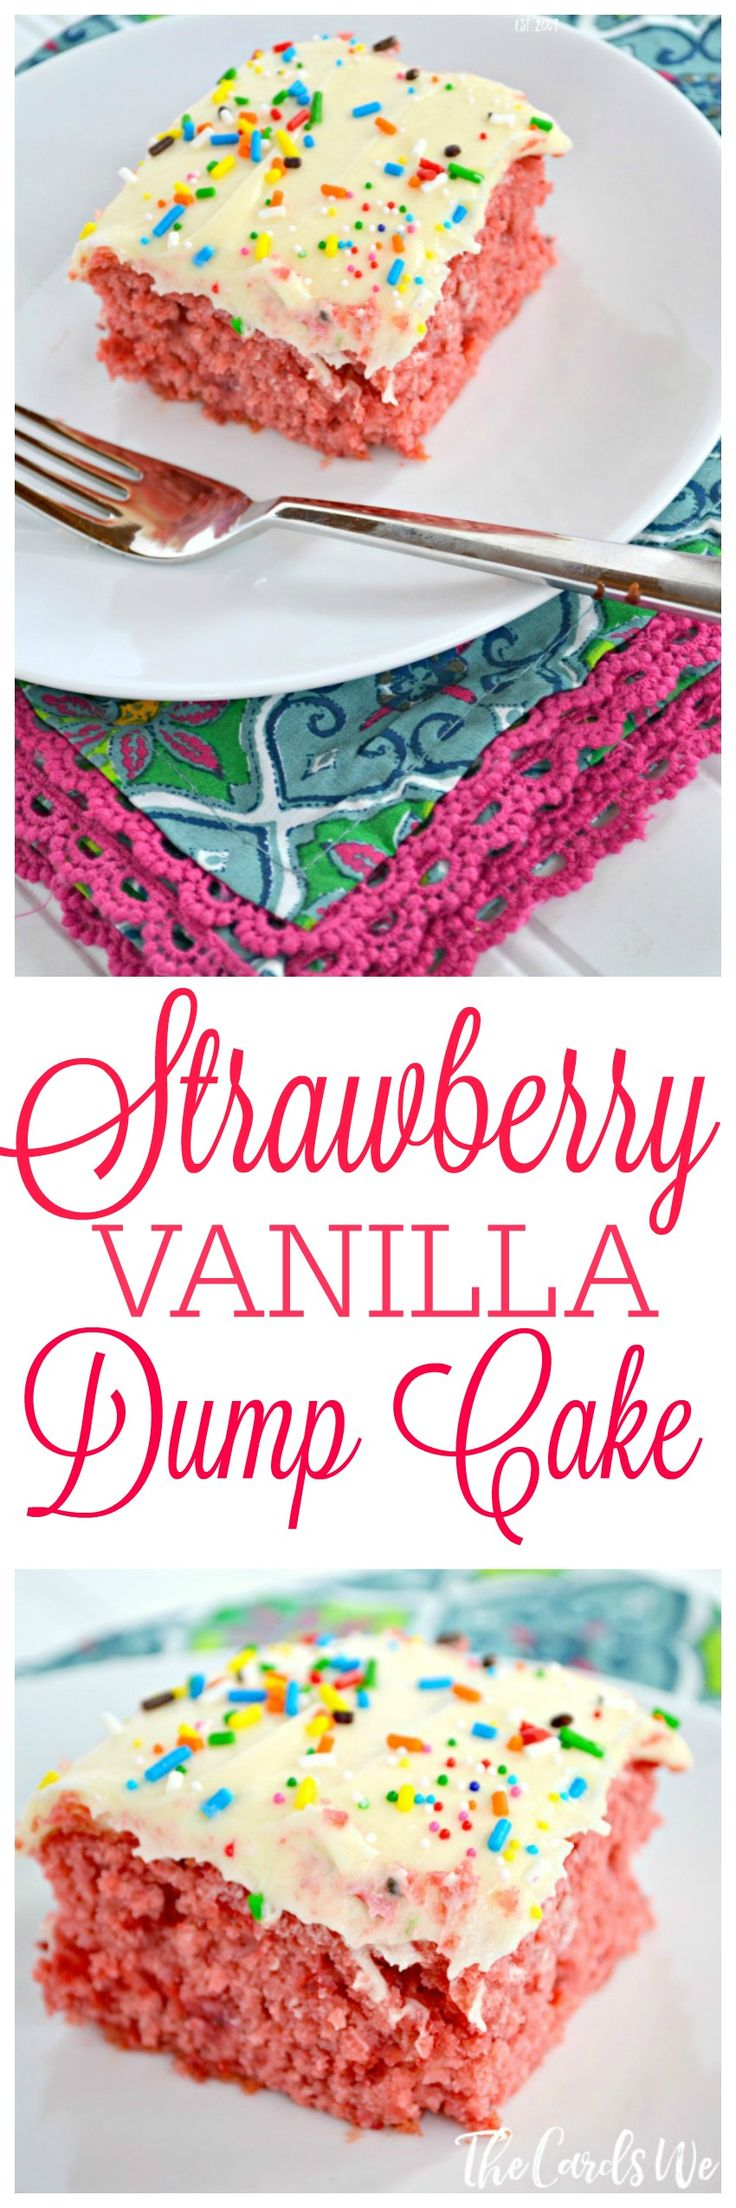 "An easy and delicious cake recipe--made from a boxed cake mix and ""DUMPED"" together! Try this Strawberry Vanilla Dump Cake recipe with your family!"